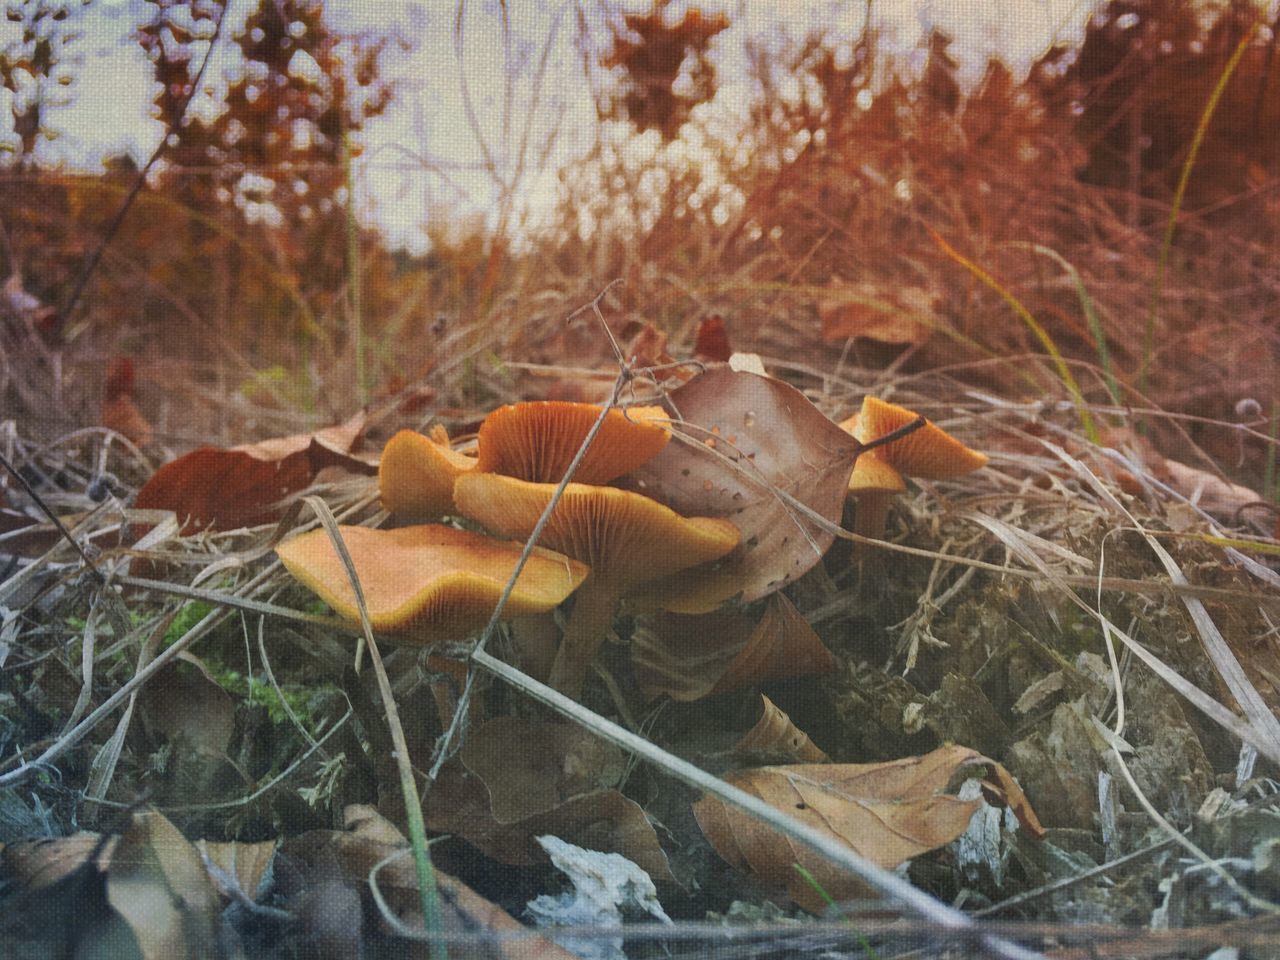 Mushroom time EyeEm Nature Lover EyeEmSwiss Mushrooms Forest Naturelovers Nature_collection Streamzoofamily Mextures Mexturesapp